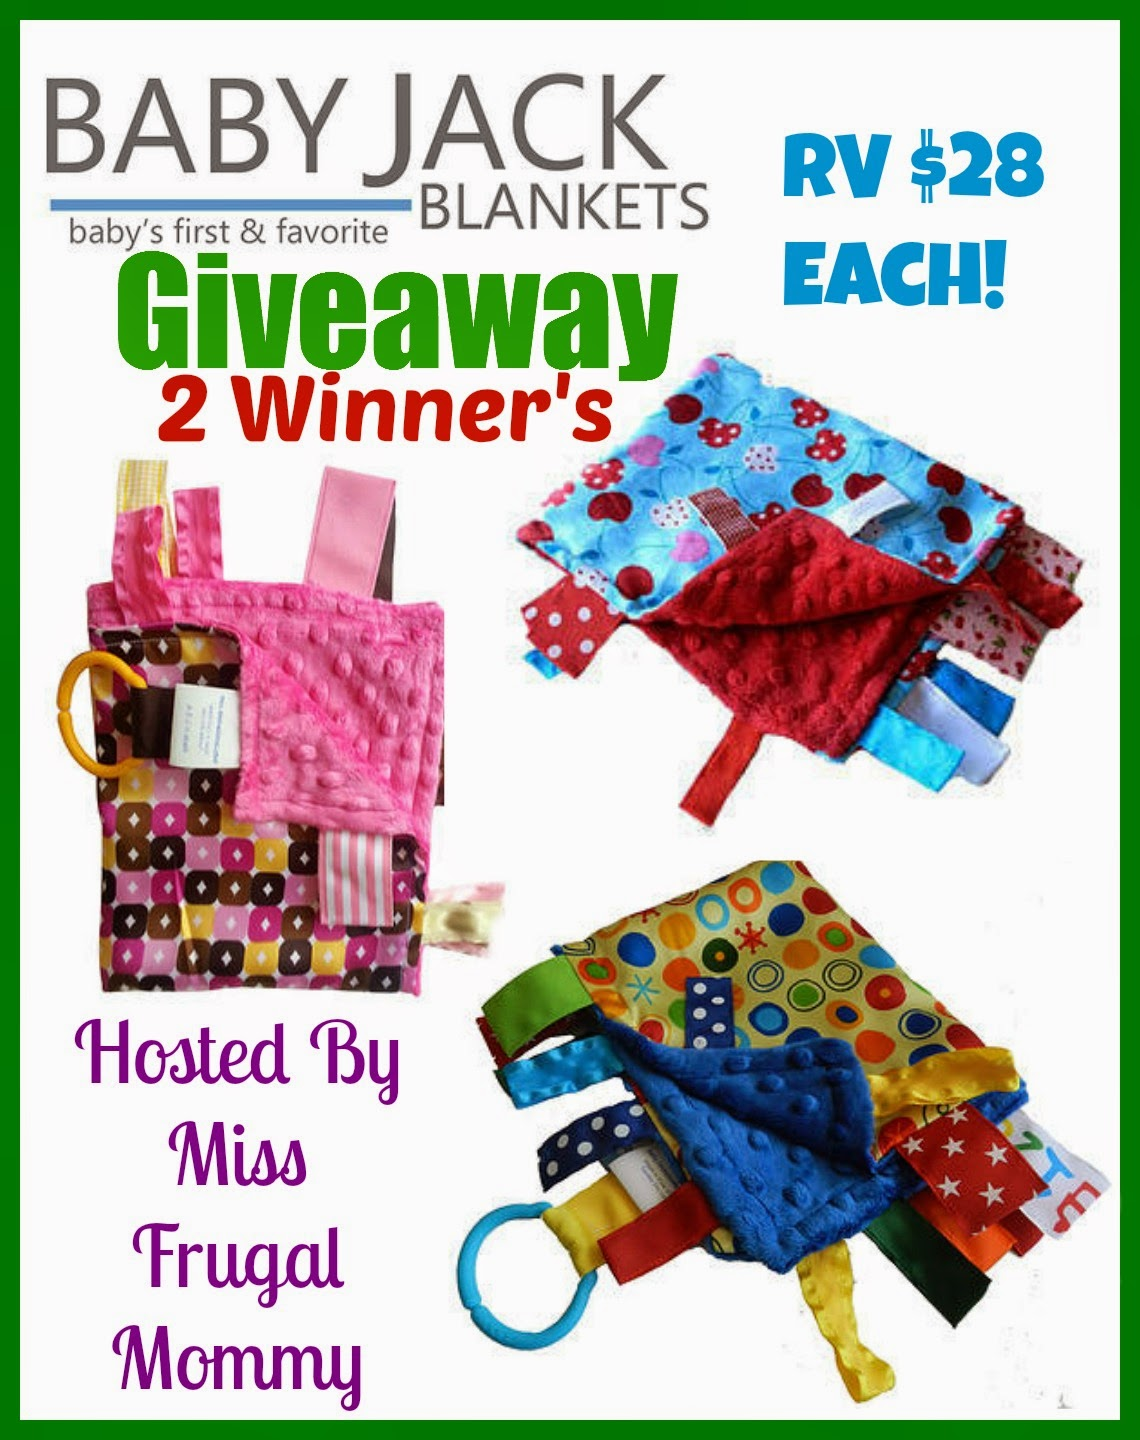 Baby Jack Blankets Giveaway